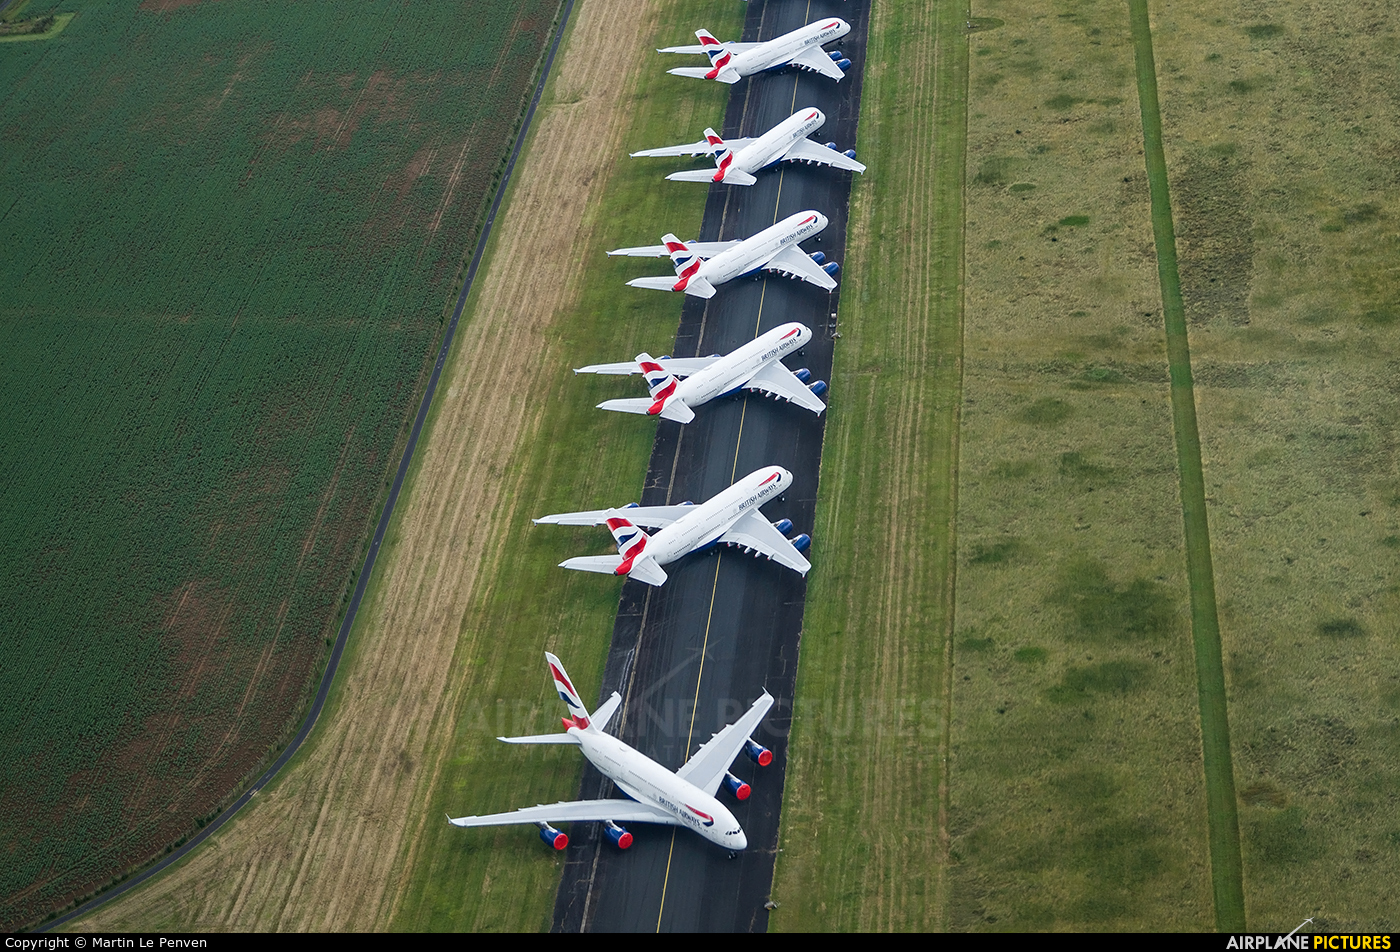 - Airport Overview - aircraft at Chateauroux - Deols (Marcel Dassault)